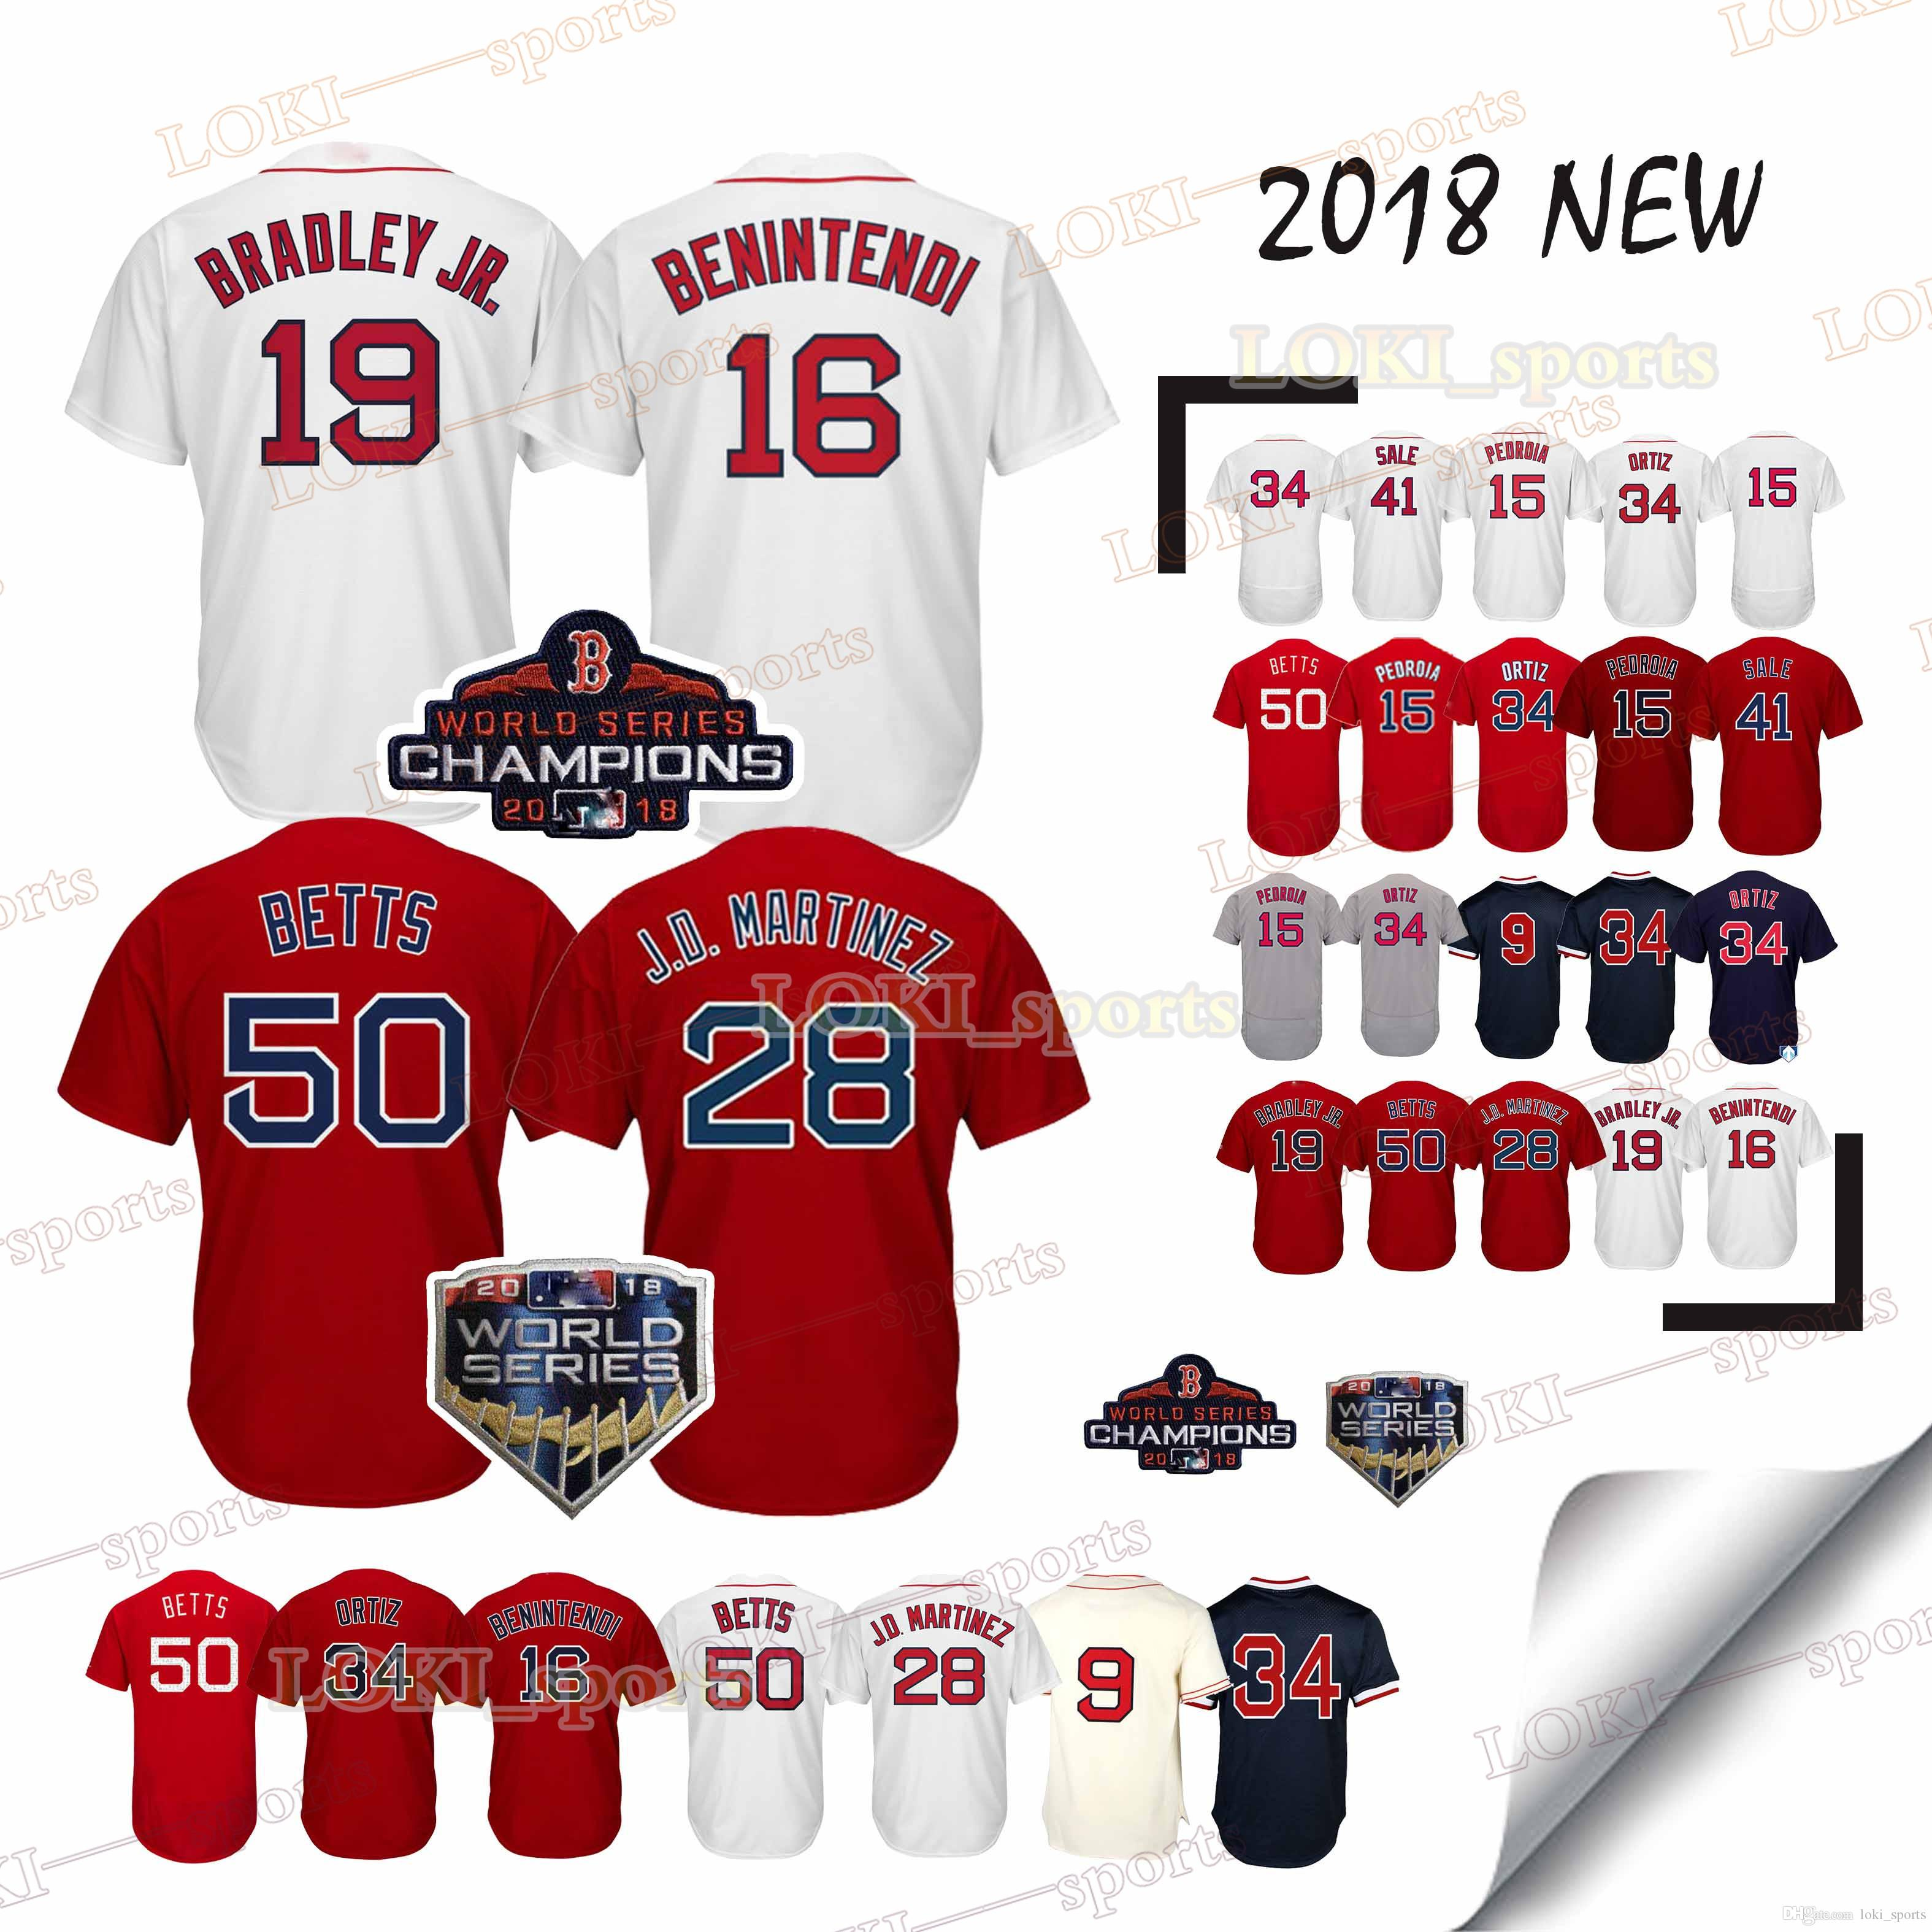 2019 Boston Red Sox Jerseys 50 Mookie Betts 16 Andrew Benintendi 28 JD  Martinez Pedroia Kinsler Bradley Jr 2018 WS Champions Jersey New From  Loki sports baa82270aed